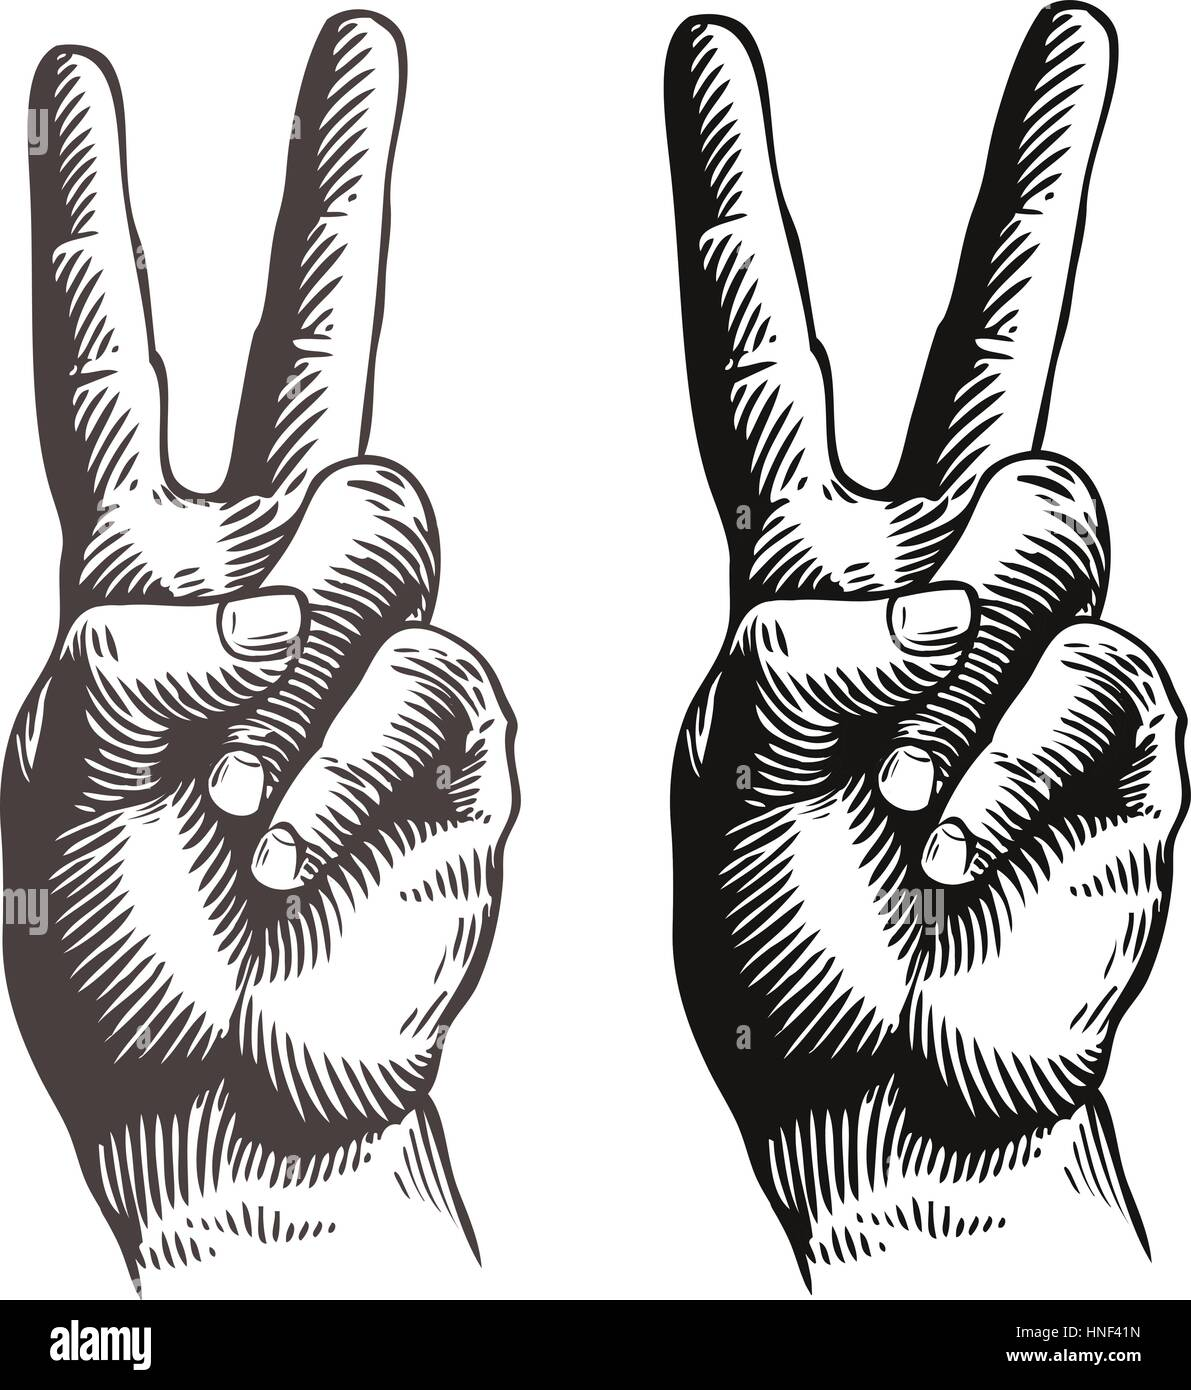 Peace symbol with hands gallery symbol and sign ideas hand gesture peace sign symbol sketch vector illustration stock hand gesture peace sign symbol sketch vector buycottarizona